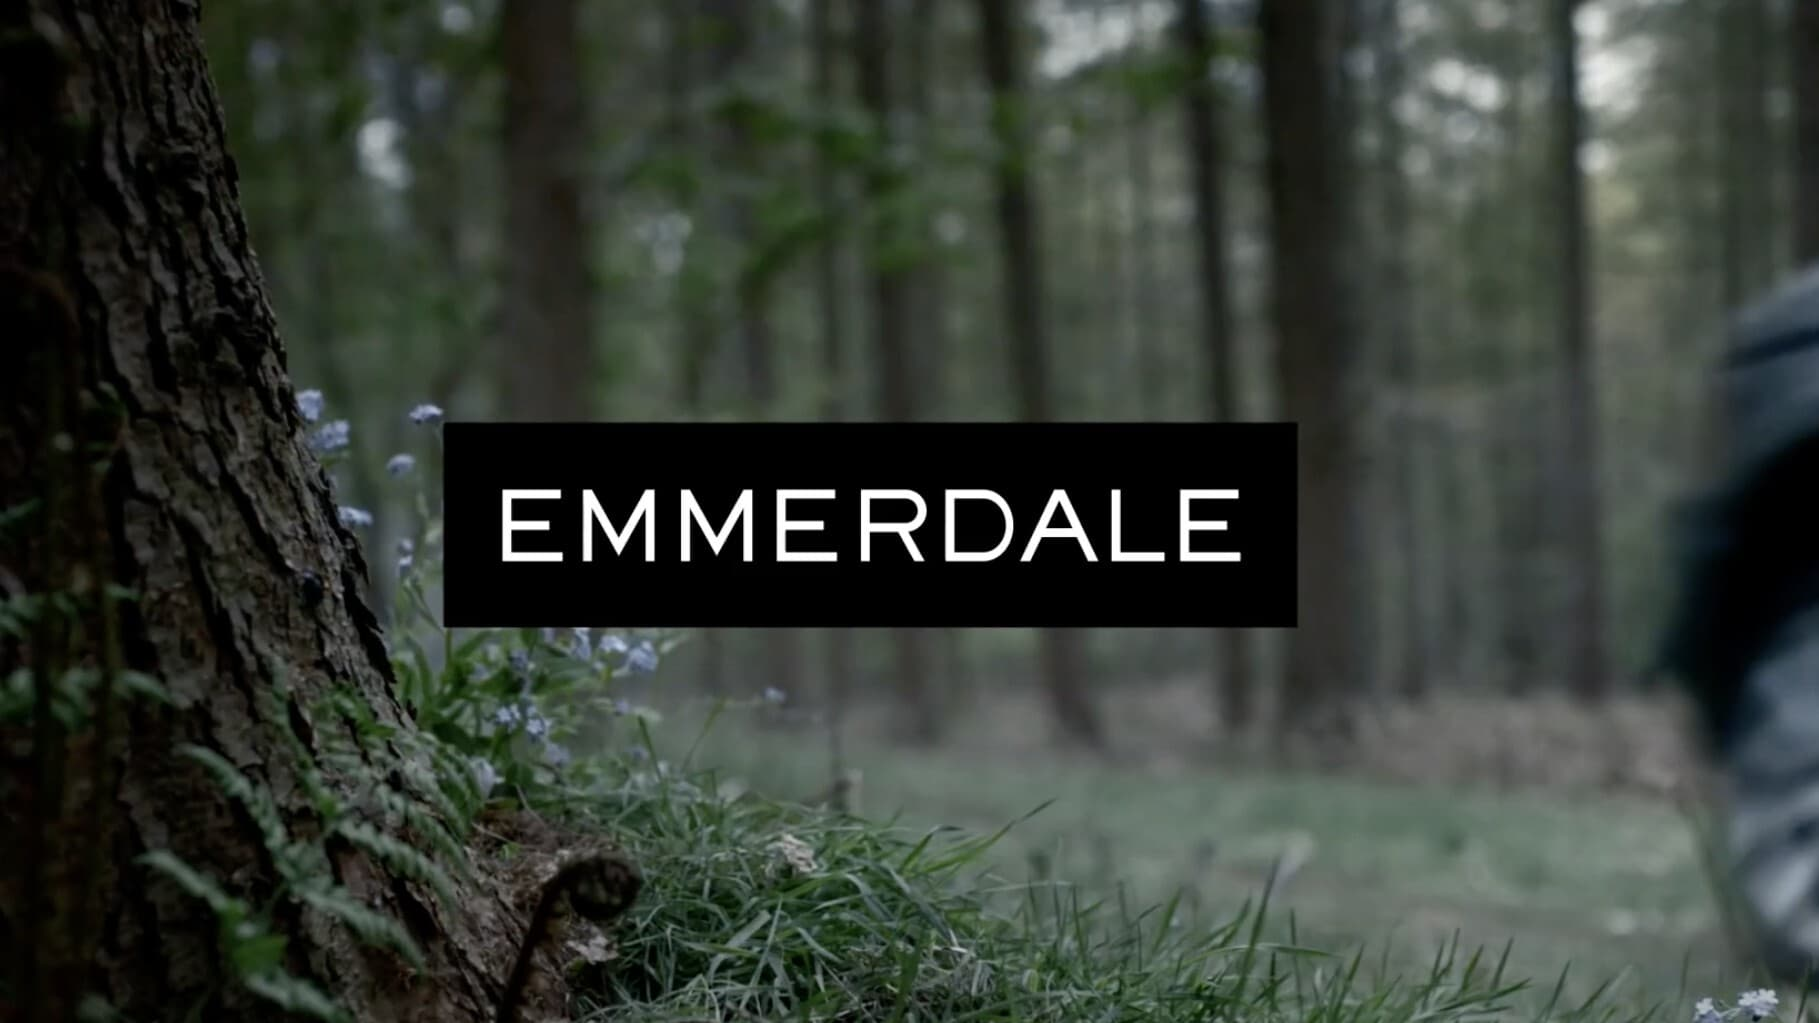 Emmerdale - Season 36 Episode 52 : March 1, 2007